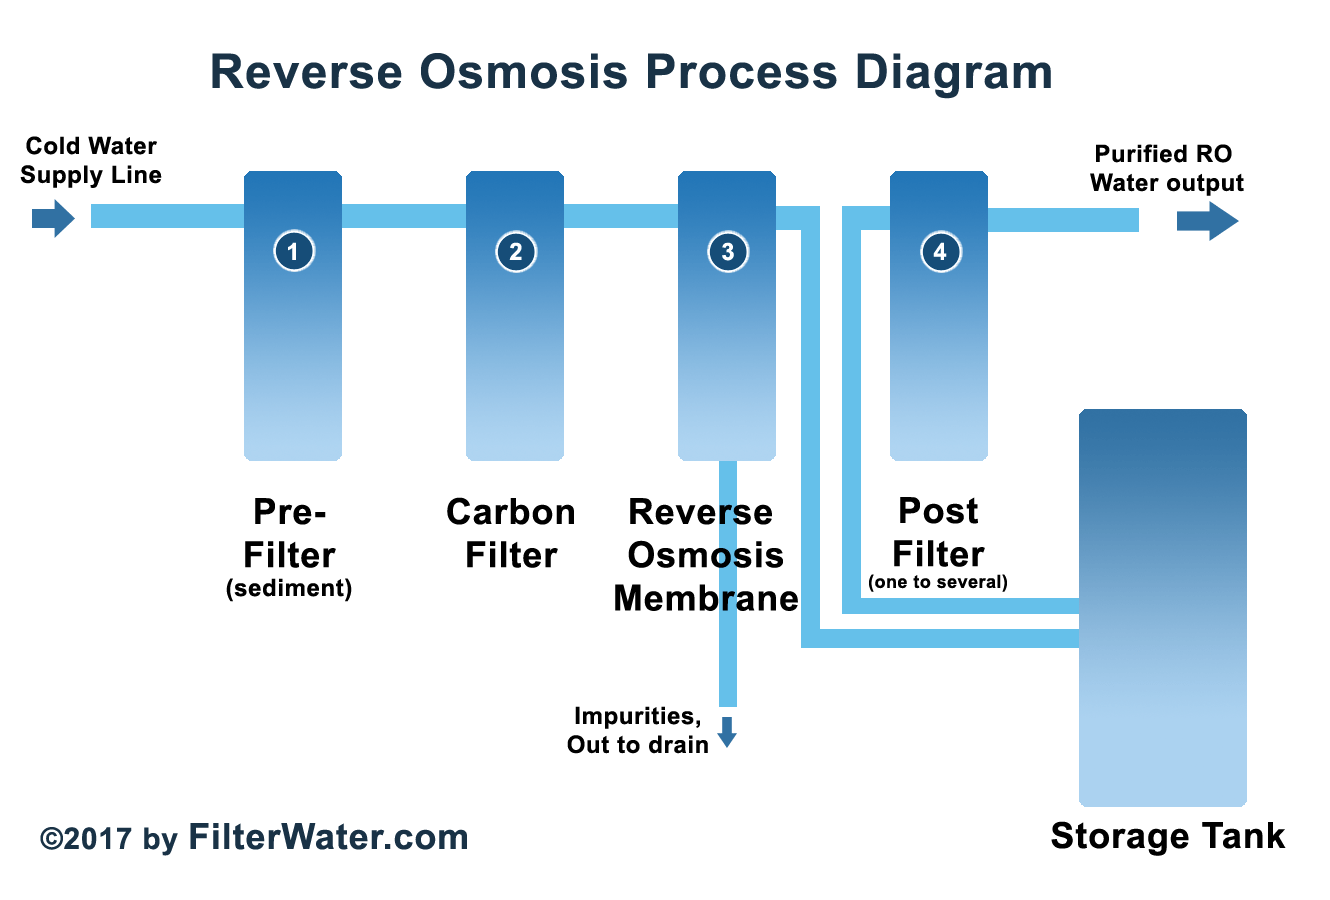 How Reverse Osmosis Process Works Filterwatercom